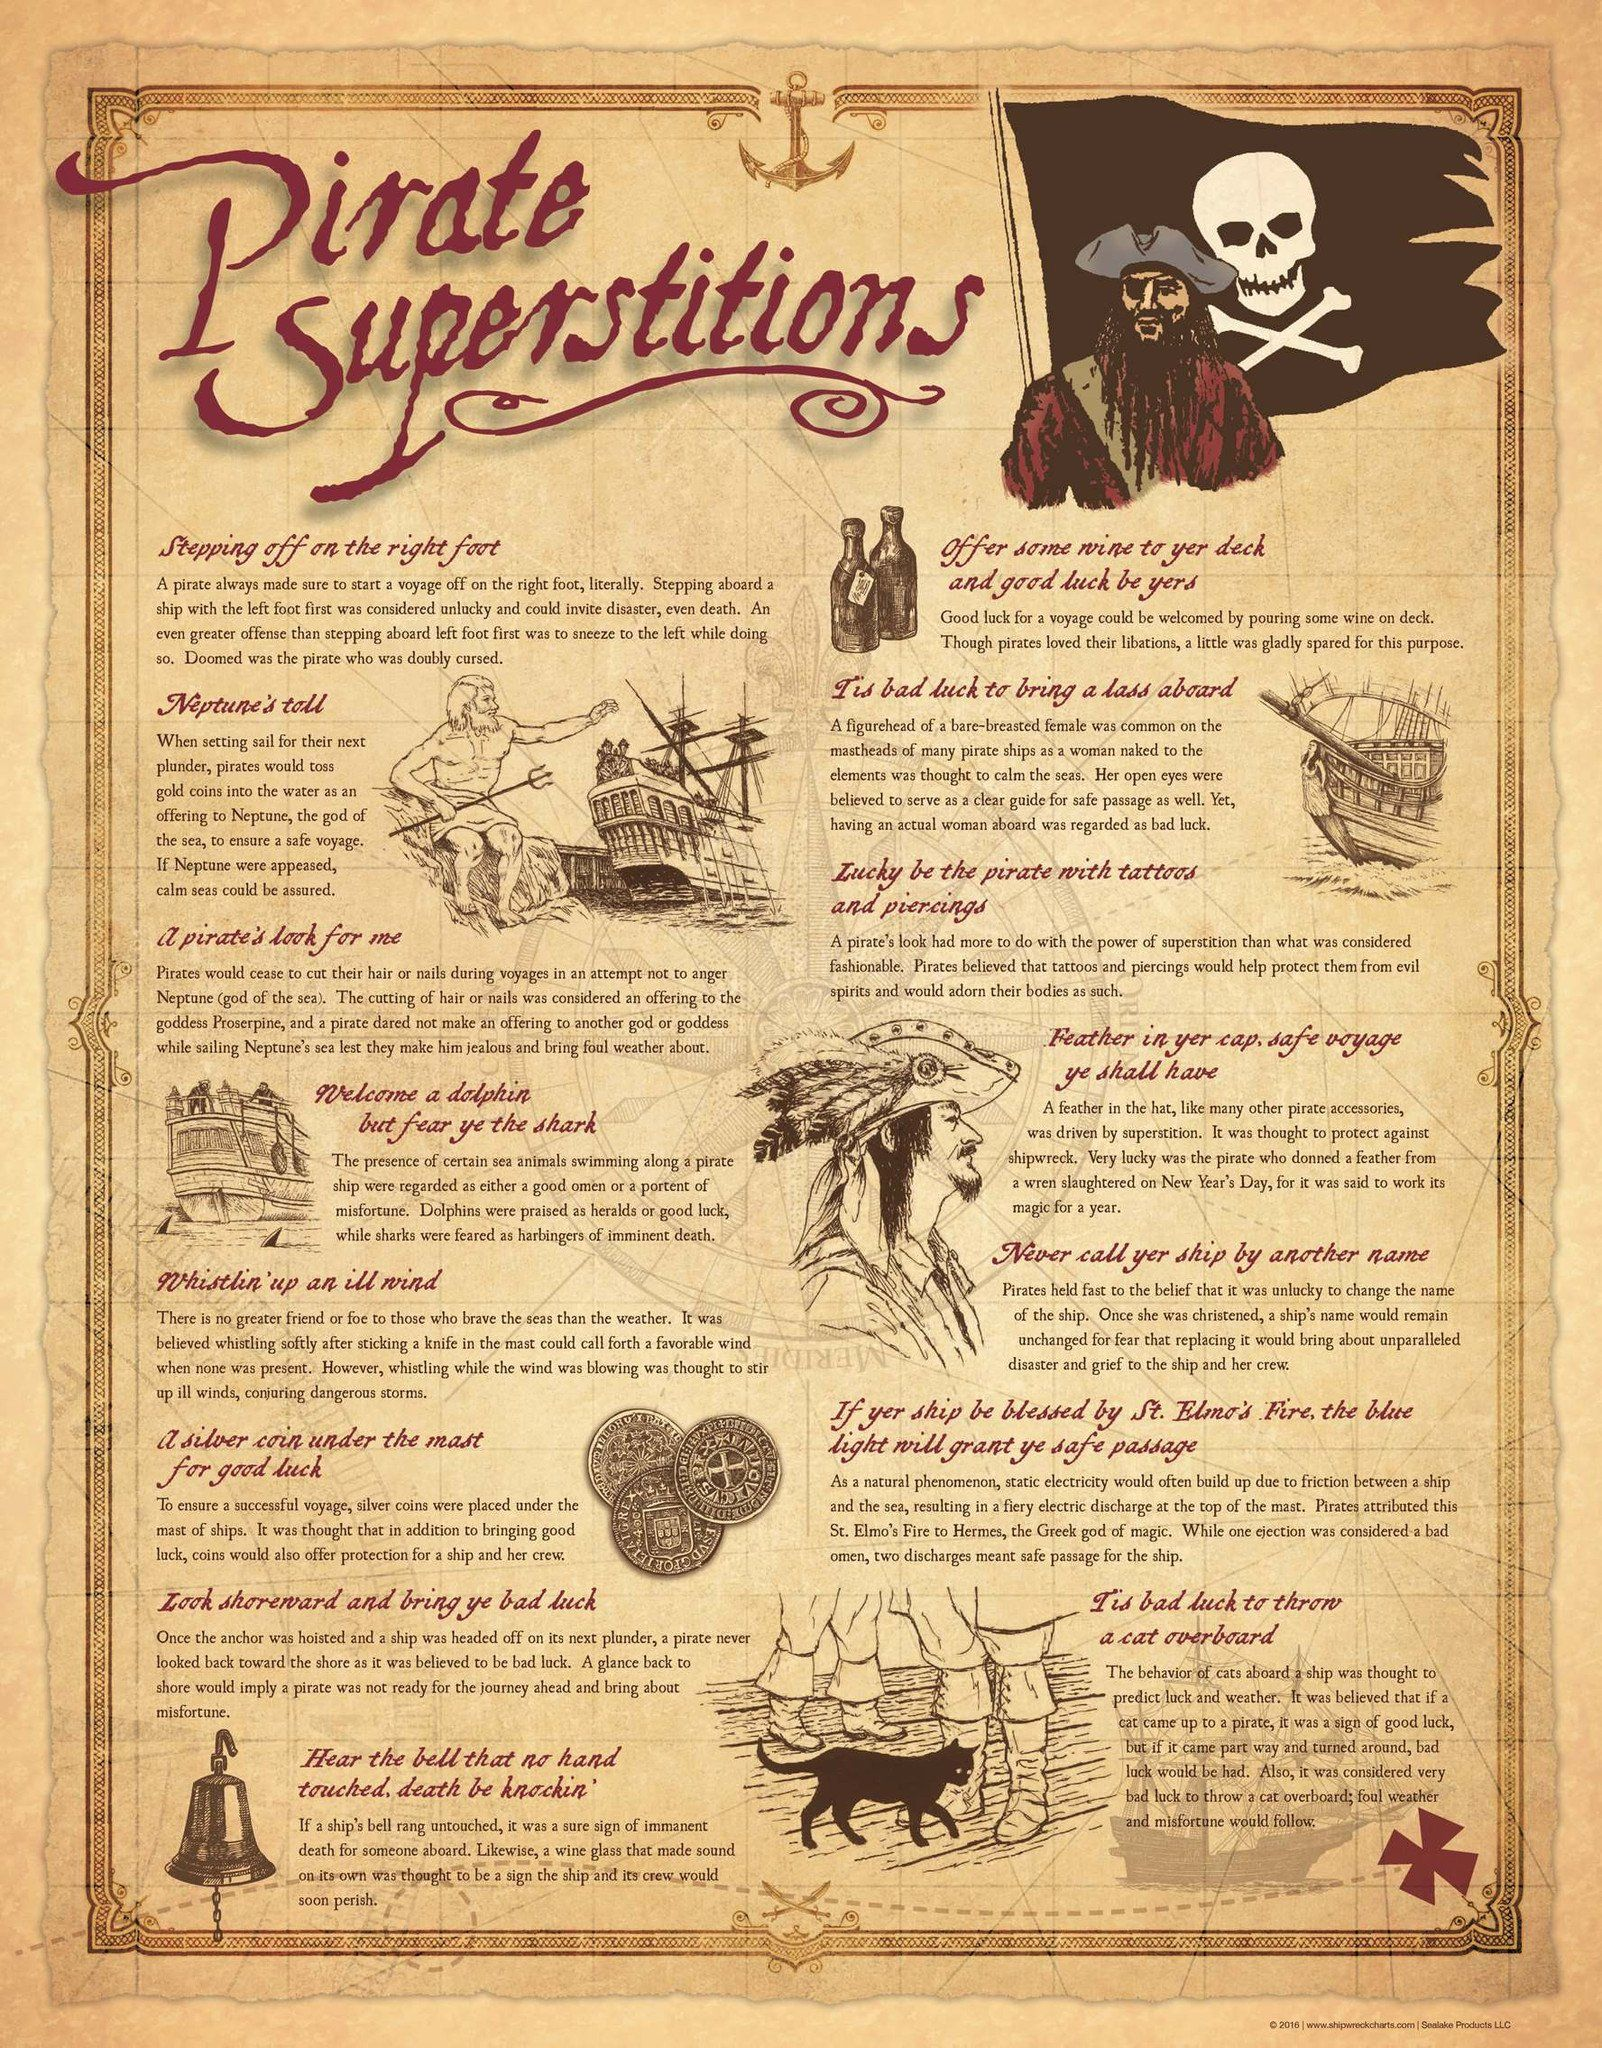 Pirate Superstitions Print | Pirate history, Ink drawings and ...